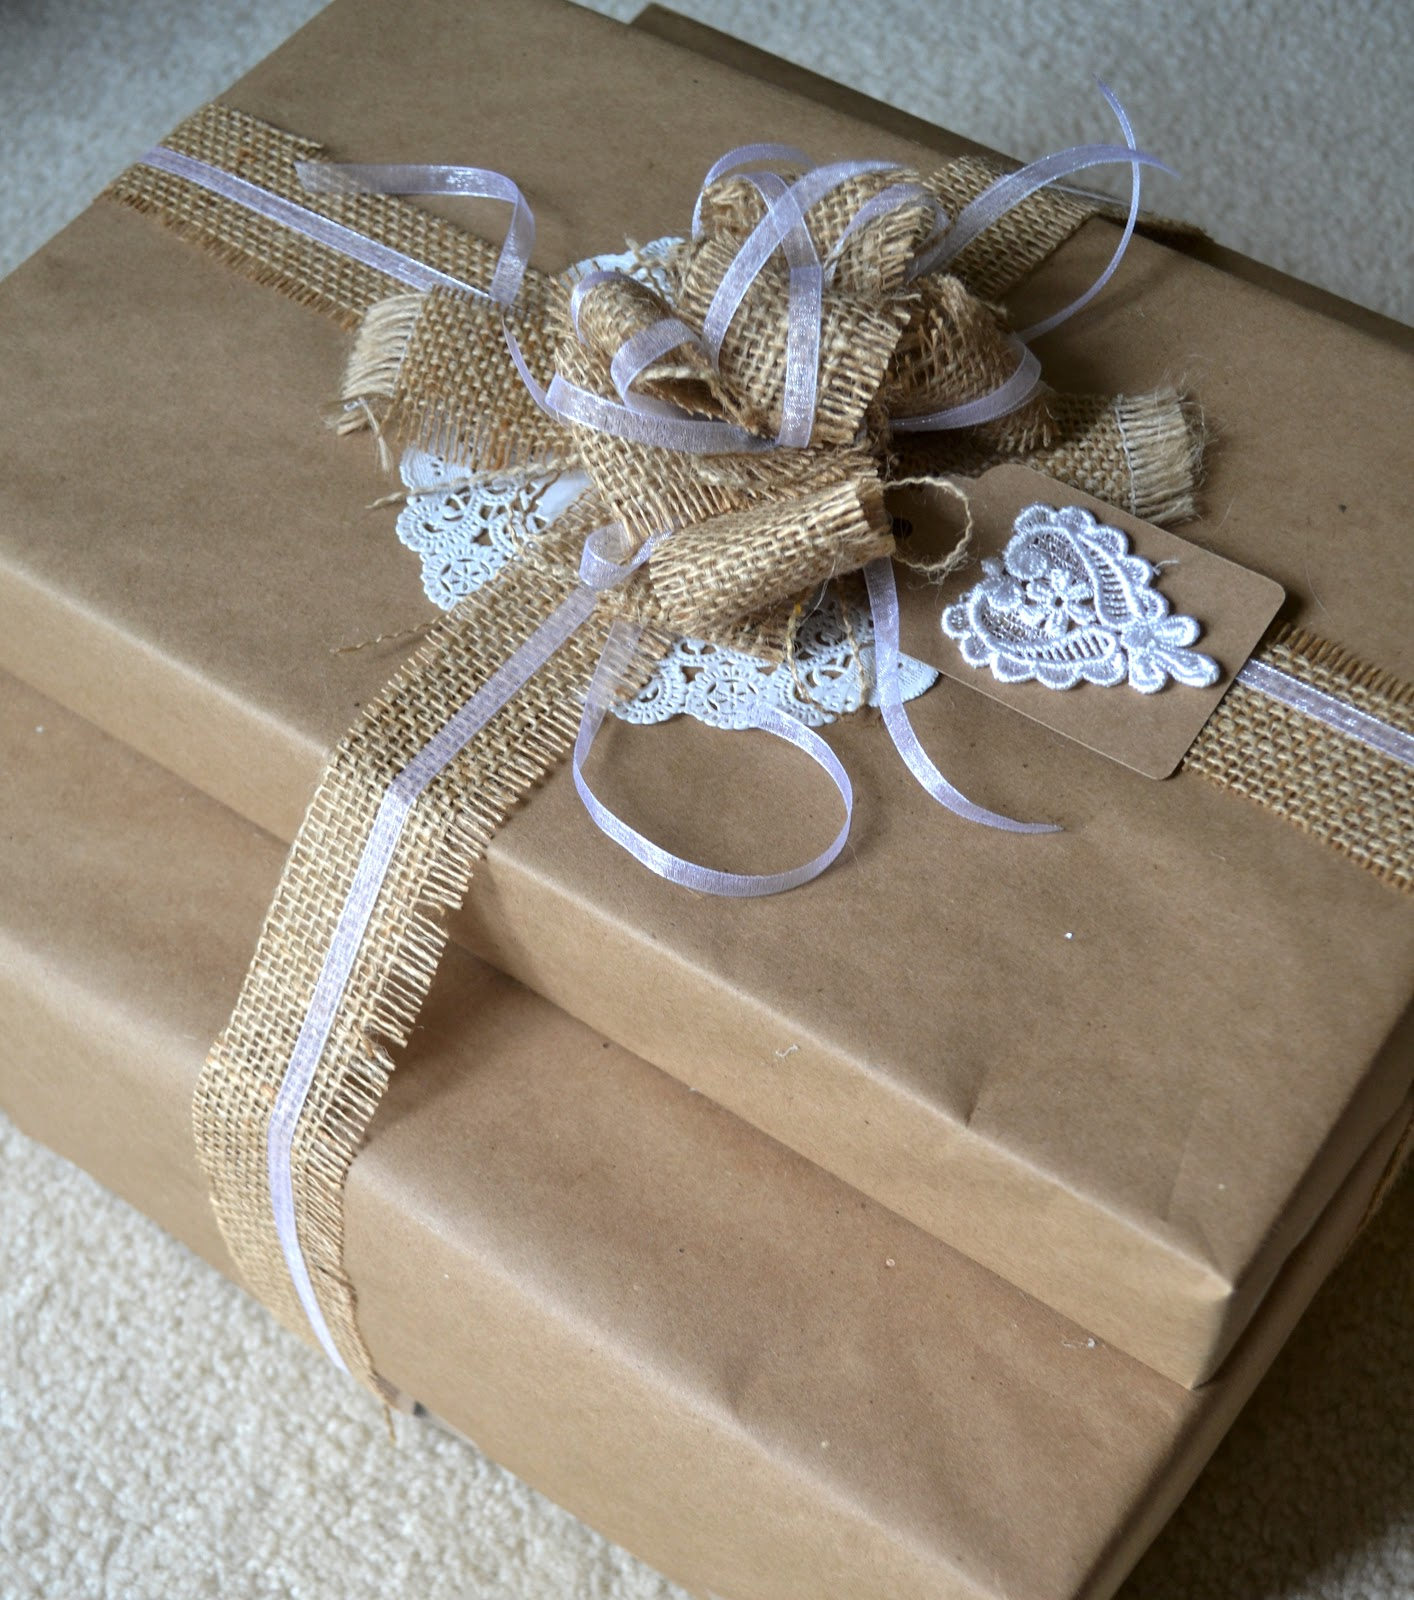 Ideas For Bridal Shower Gift Bags : used kraft paper made out of recycled materials, burlap, a doily and ...